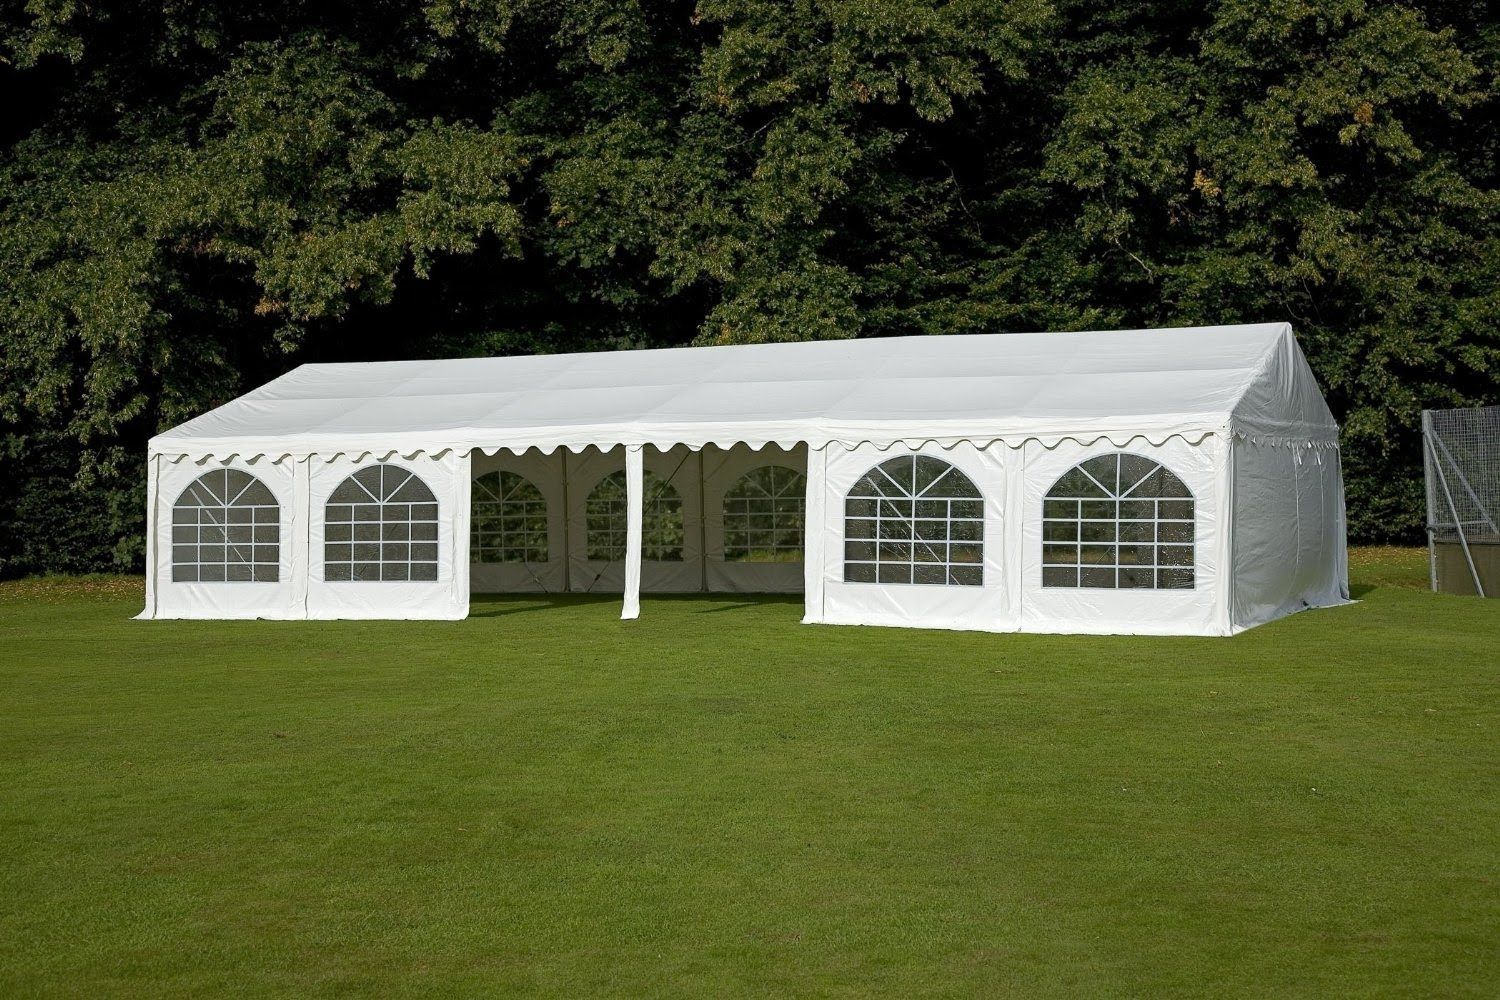 40u0027x20u0027 PVC Party/Wedding Tent (Heavy Duty) Canopy - Gazebo & 40u0027x20u0027 PVC Party/Wedding Tent (Heavy Duty) Canopy - Gazebo or ...